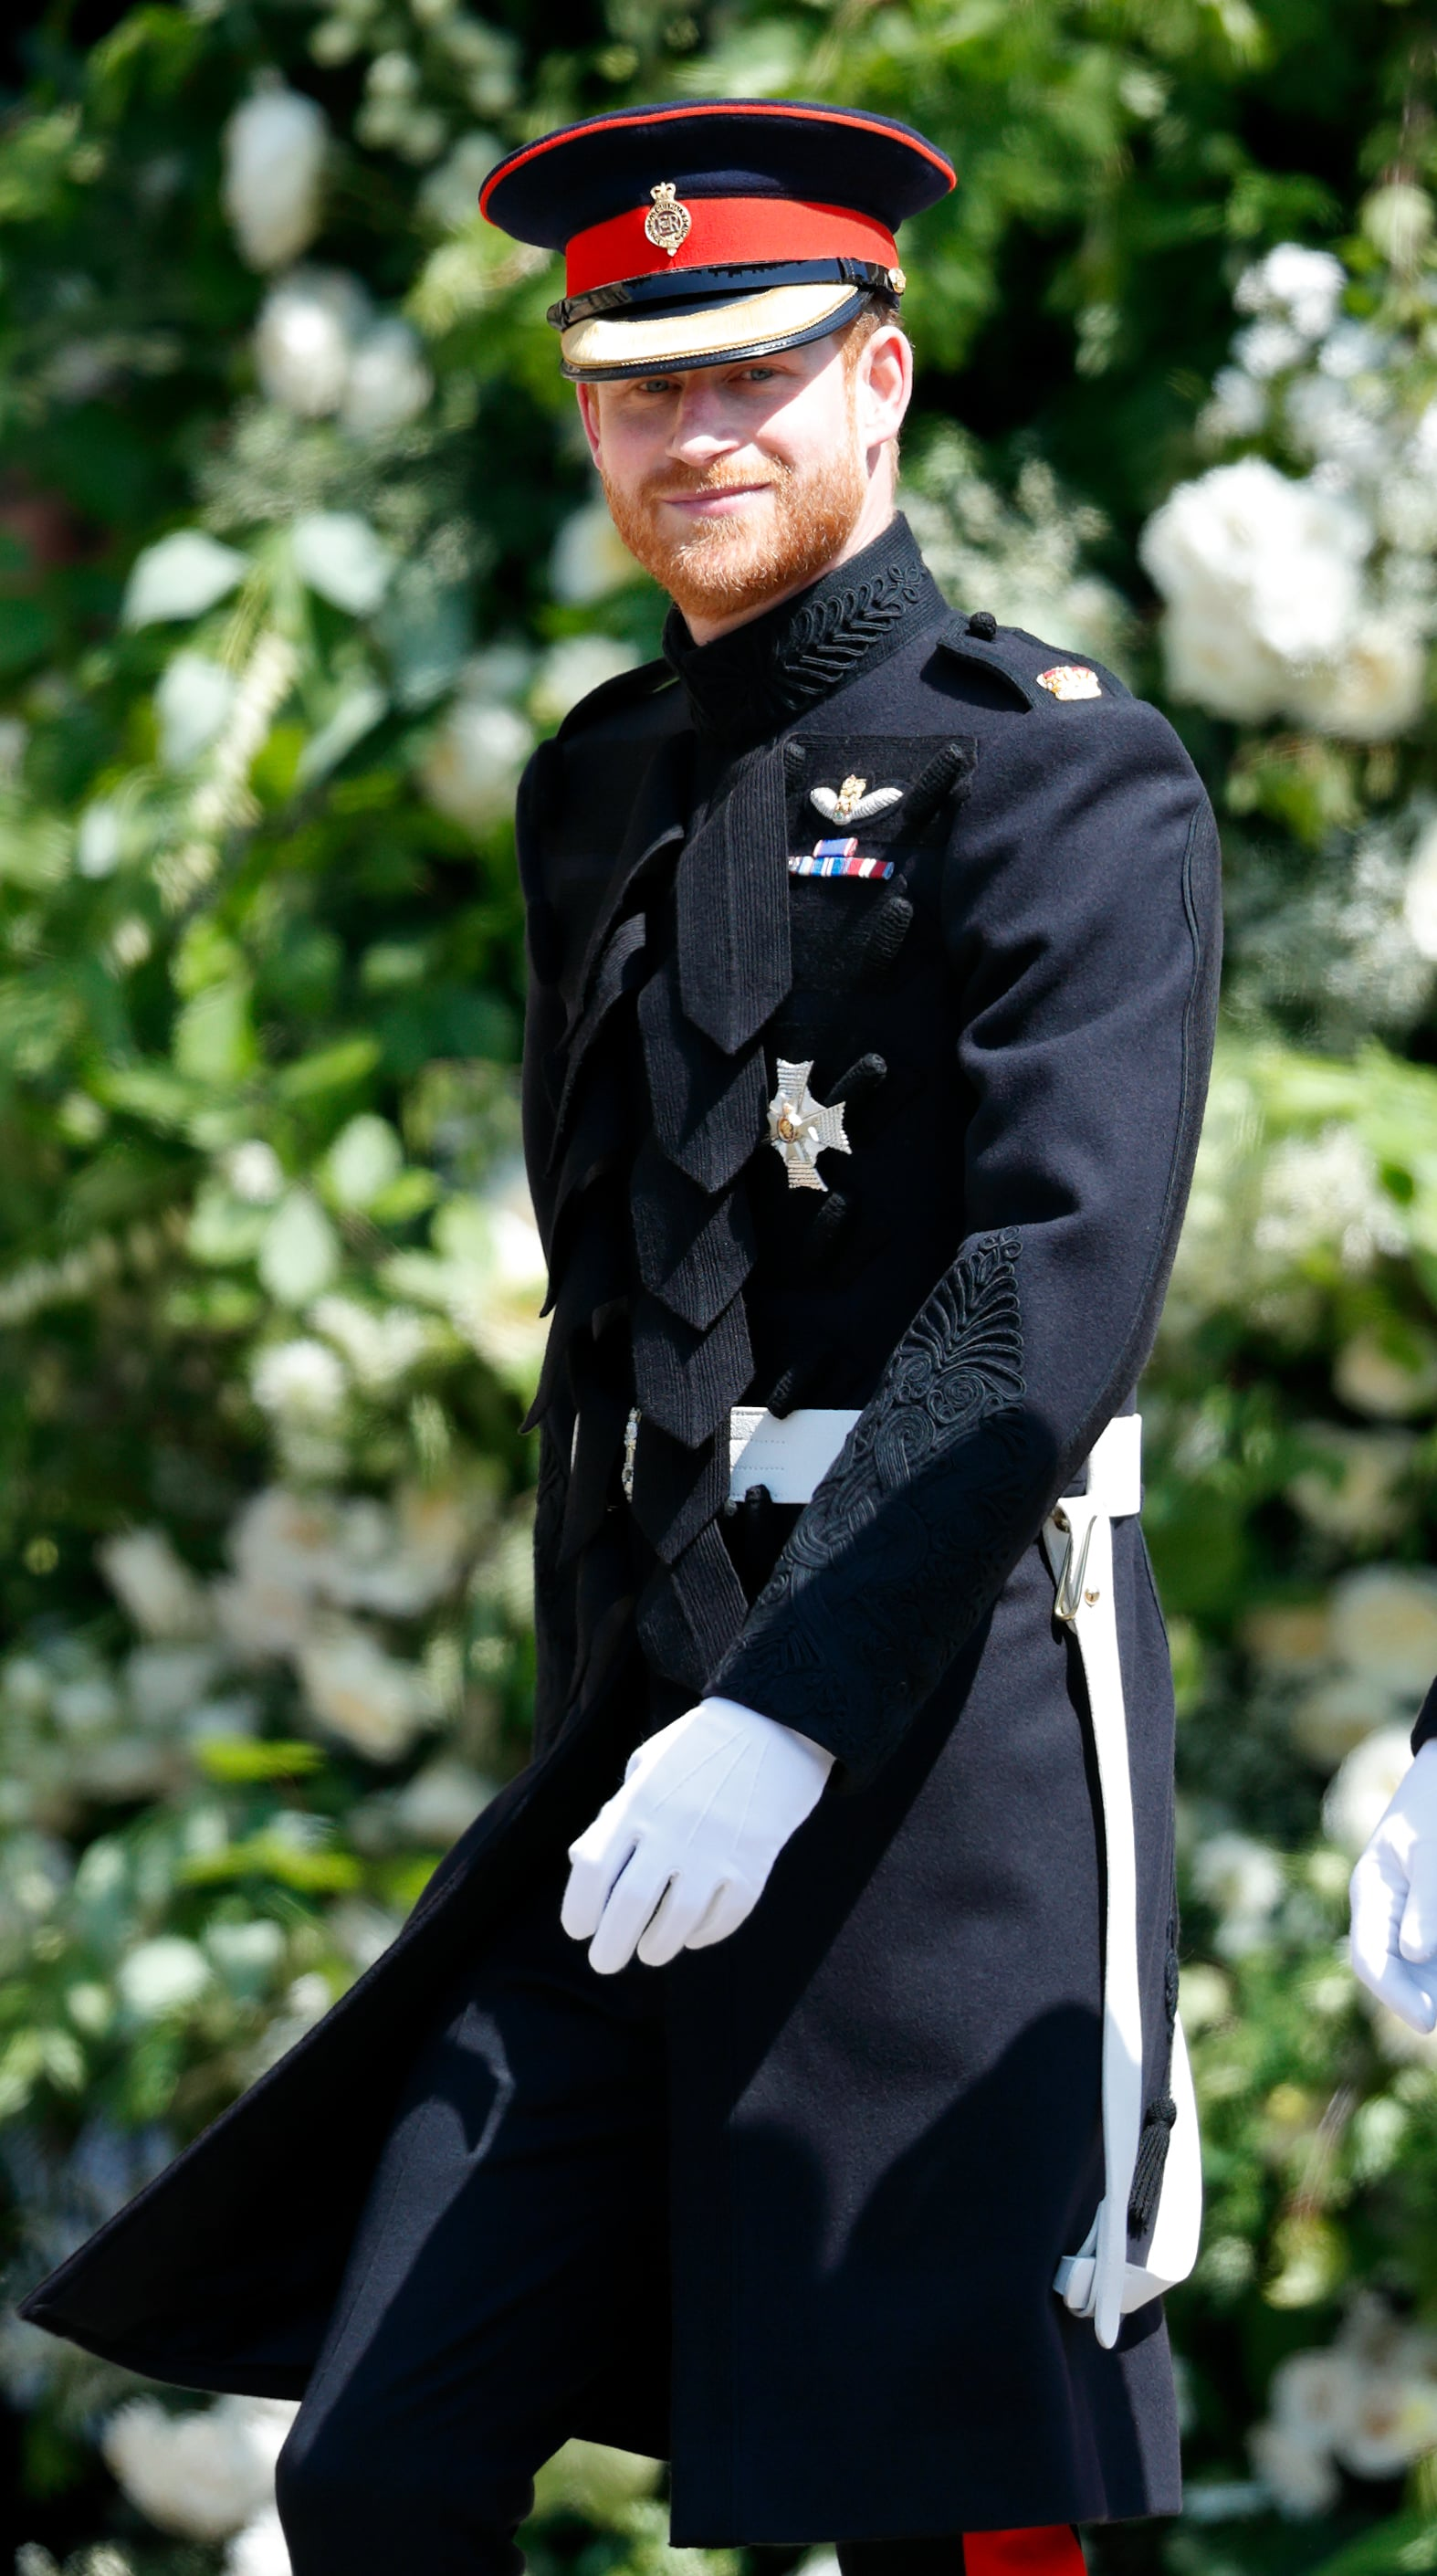 WINDSOR, UNITED KINGDOM - MAY 19: (EMBARGOED FOR PUBLICATION IN UK NEWSPAPERS UNTIL 24 HOURS AFTER CREATE DATE AND TIME) Prince Harry arrives at St George's Chapel, Windsor Castle ahead of his wedding to Ms Meghan Markle on May 19, 2018 in Windsor, England. Prince Henry Charles Albert David of Wales marries Ms. Meghan Markle in a service at St George's Chapel inside the grounds of Windsor Castle. Among the guests were 2200 members of the public, the royal family and Ms. Markle's Mother Doria Ragland. (Photo by Max Mumby/Indigo/Getty Images)